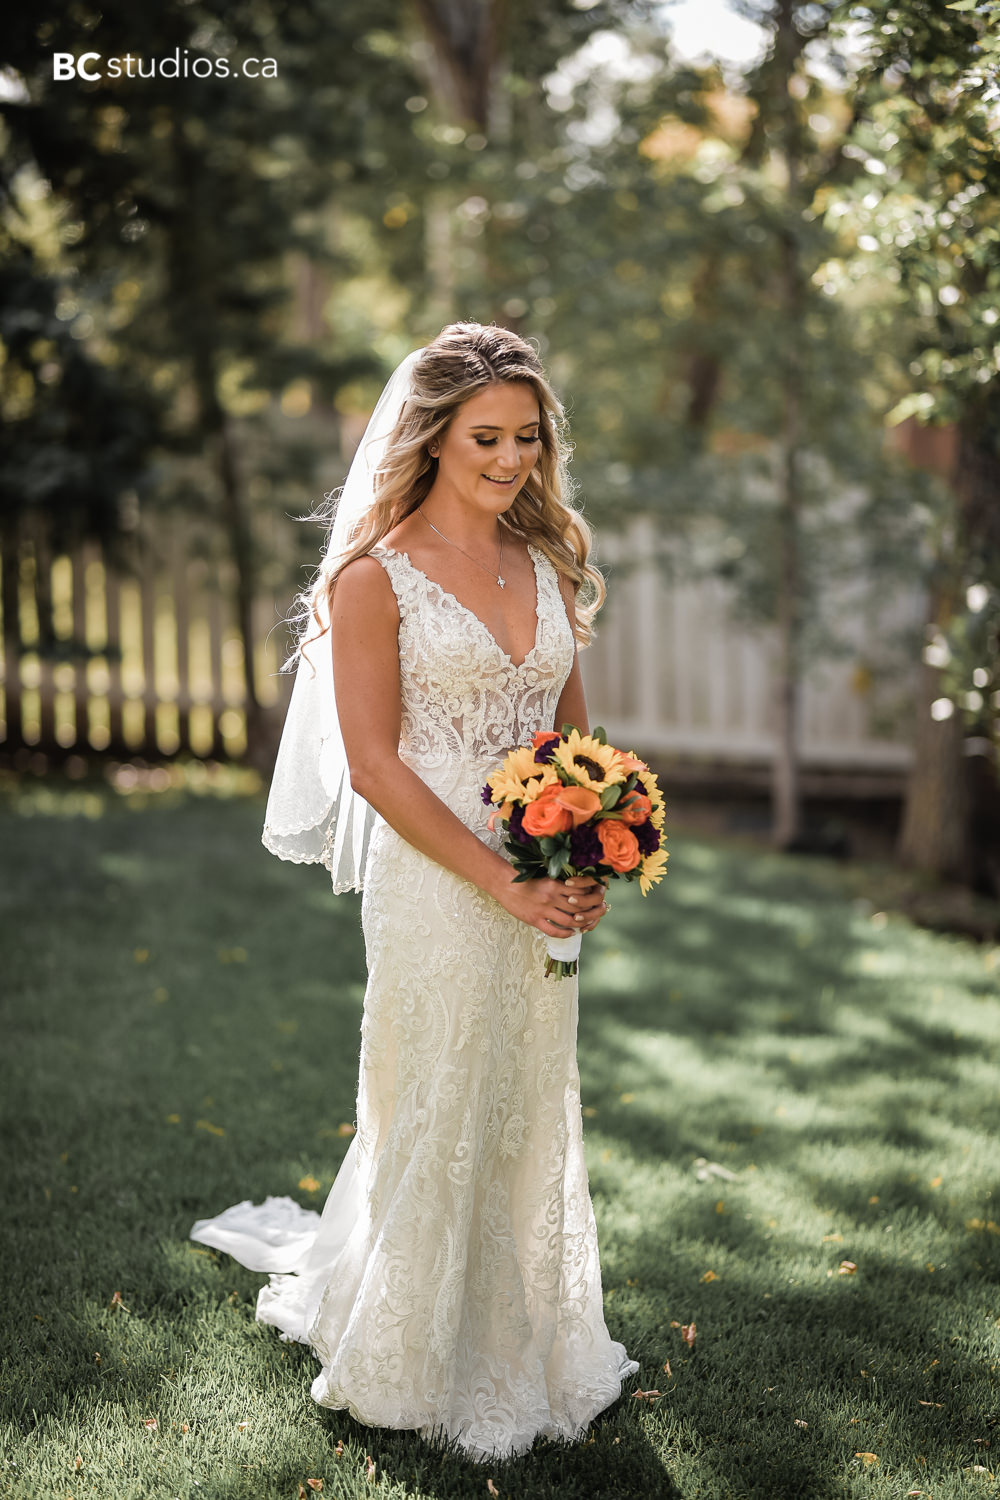 Fall wedding at Greystone Gardens Bed and Breakfast